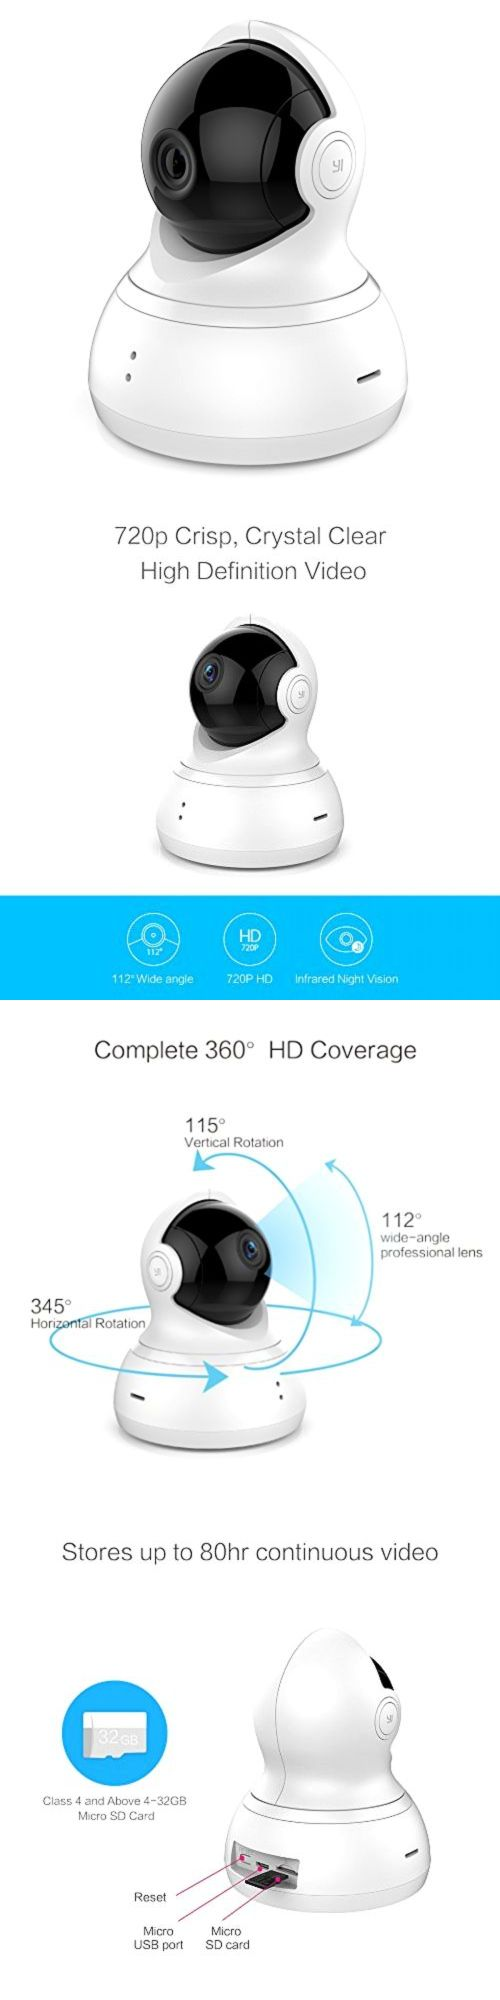 Security Cameras: Yi Dome Camera Pan/Tilt/Zoom Wireless Ip Security Surveillance System 720P Hd -> BUY IT NOW ONLY: $75.61 on eBay!